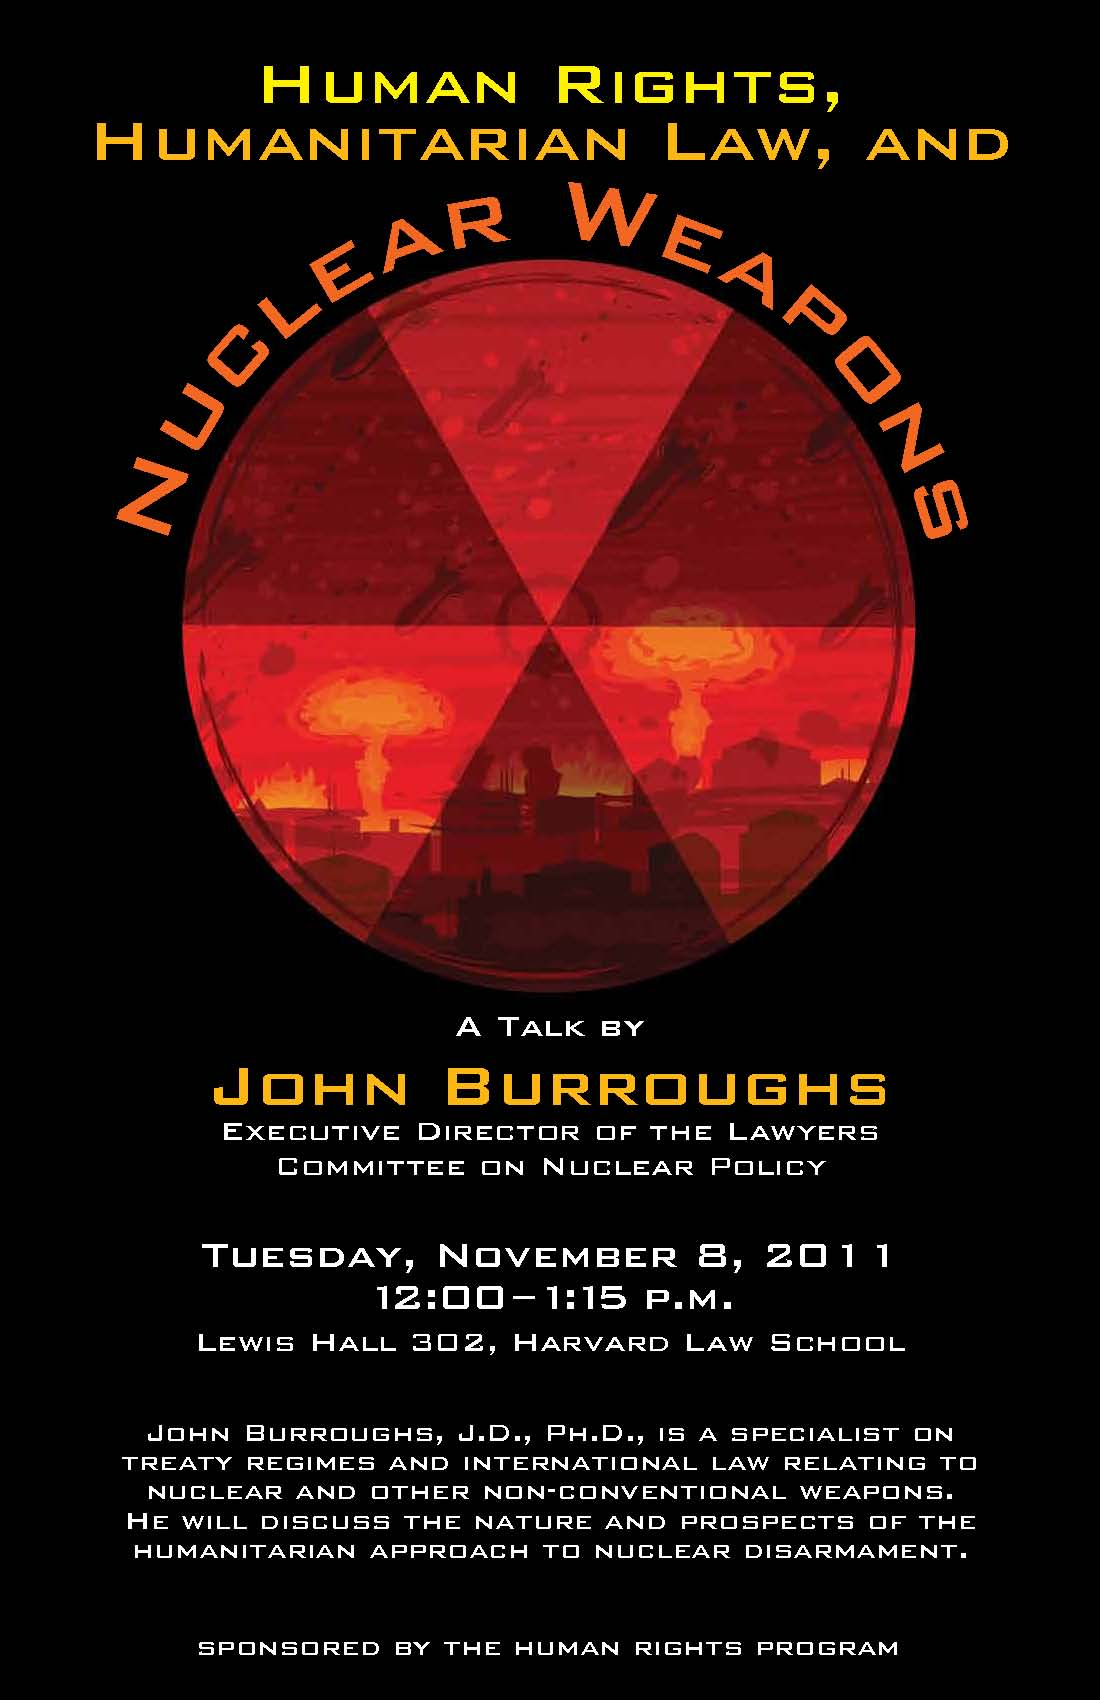 Event poster displays a red circle warning sign with mushroom clouds behind it, illustrating the fearsome quality of nuclear weapons.